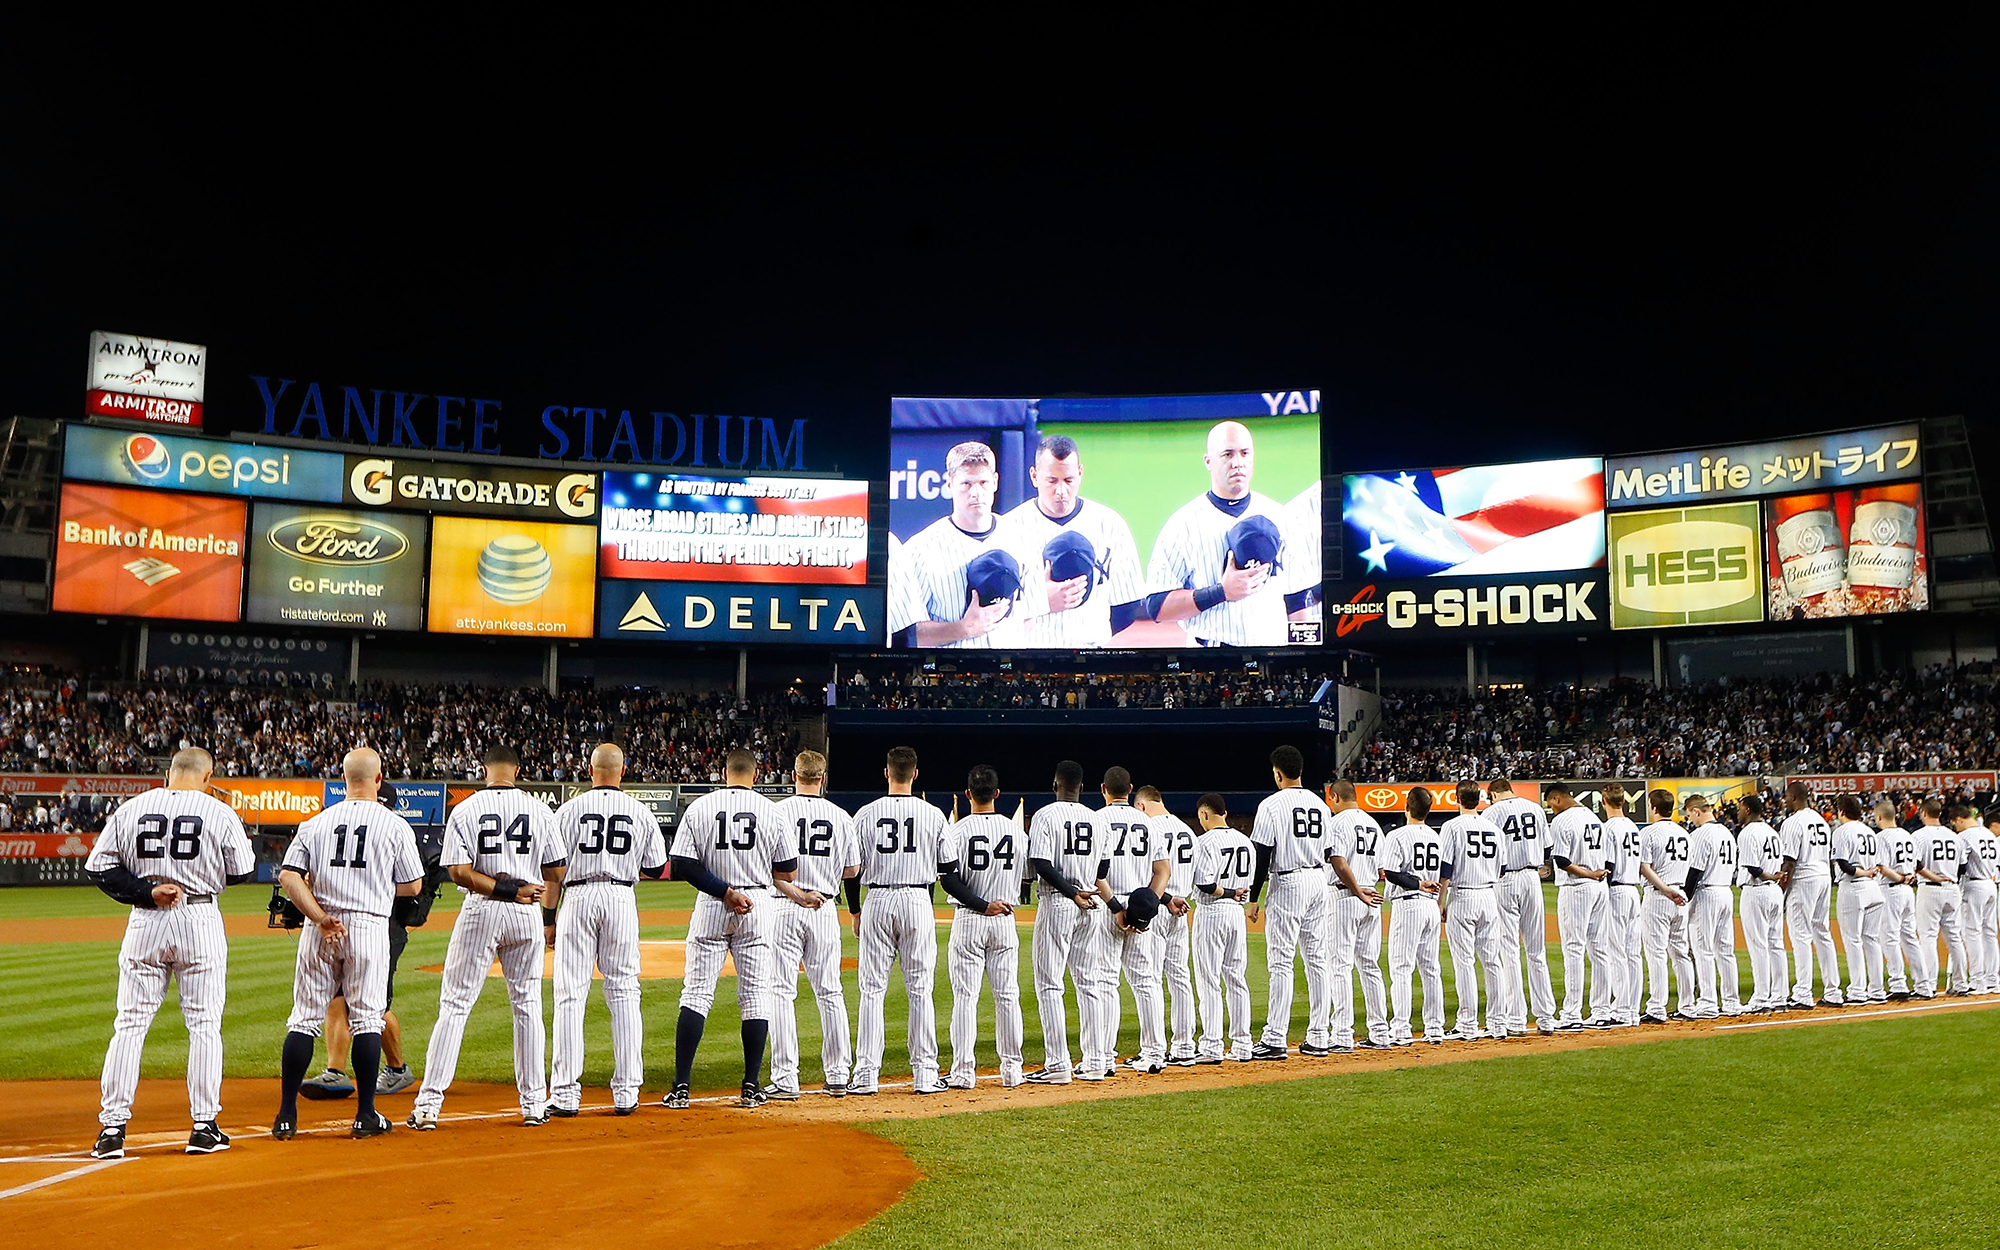 NEW YORK, NY - OCTOBER 06:  (NEW YORK DAILIES OUT)   The New York Yankees and the Houston Astros stand for the national anthem before the American League Wild Card Game at Yankee Stadium on October 6, 2015 in the Bronx borough of New York City, New York.